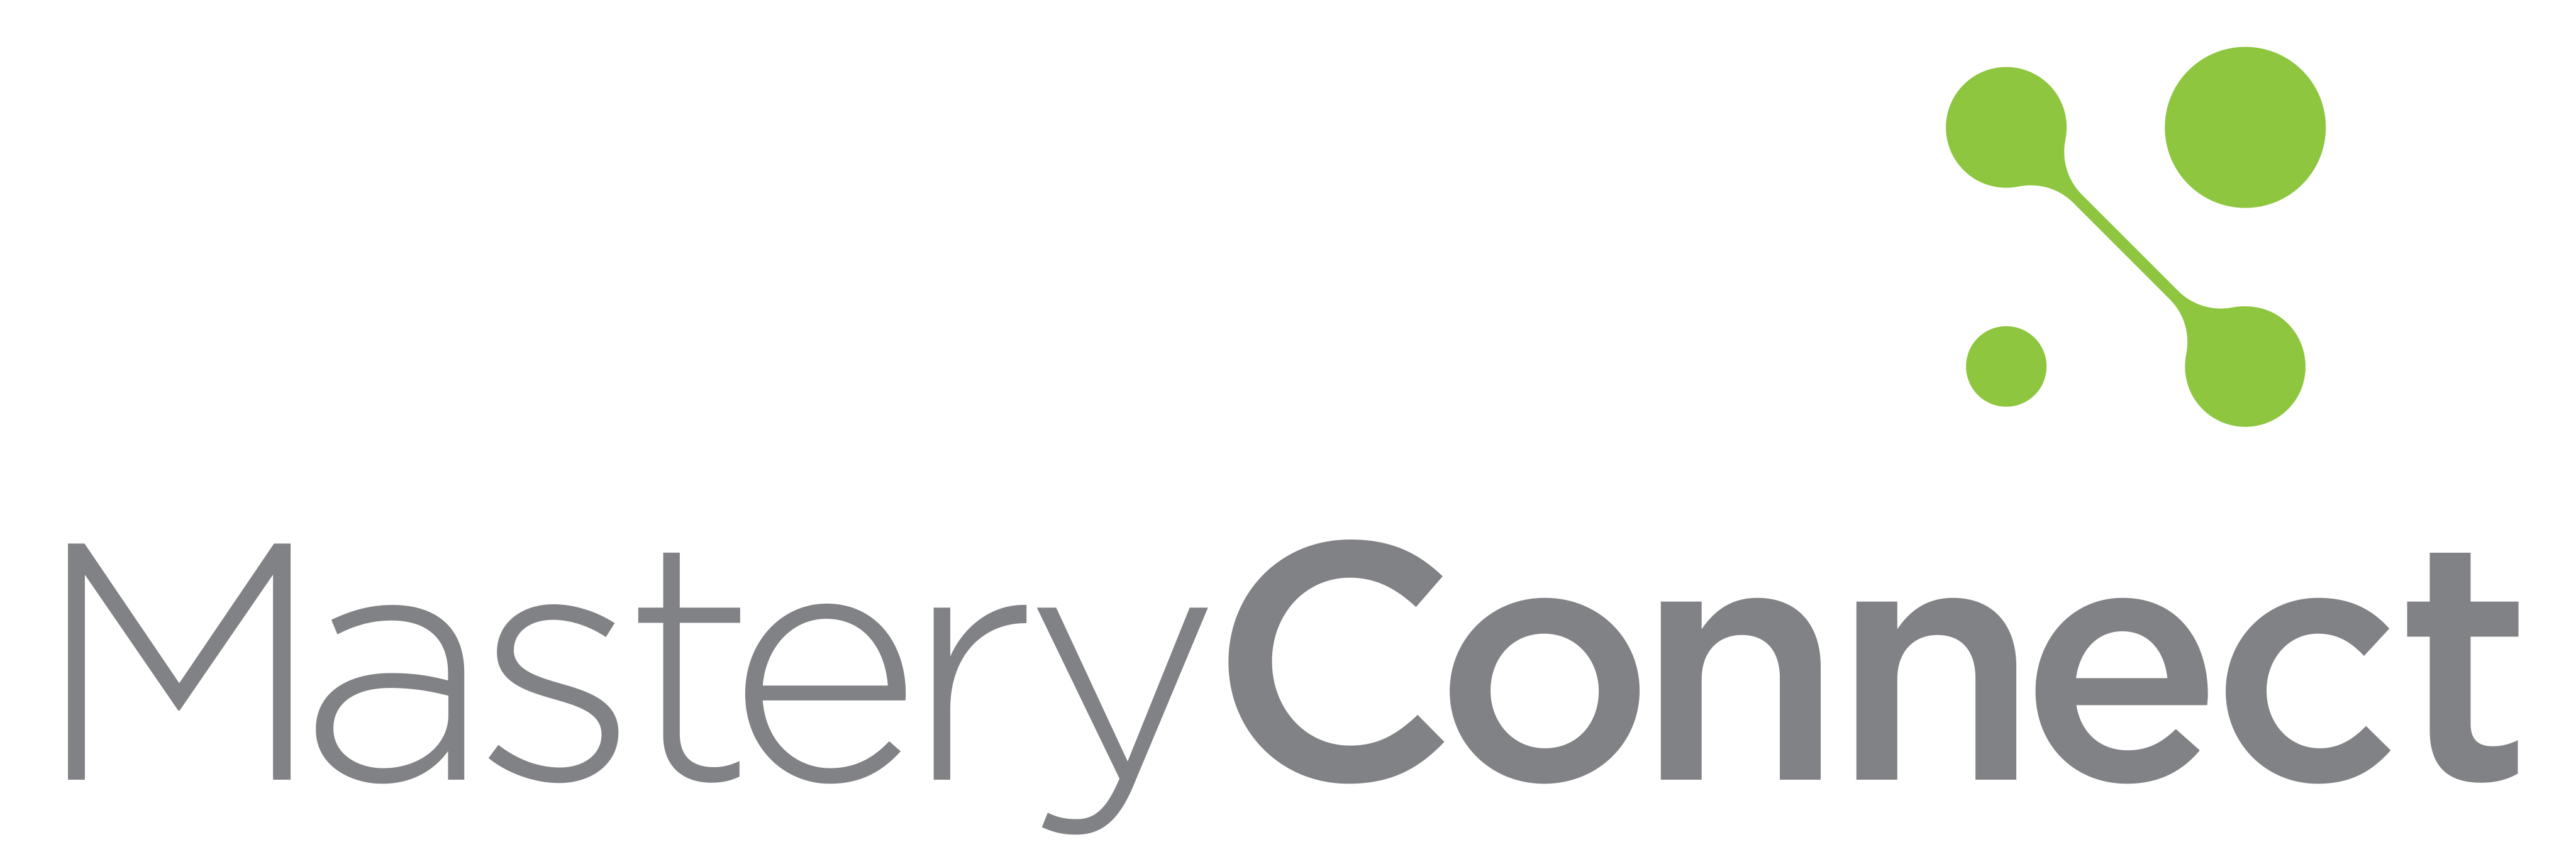 https://app.masteryconnect.com/session/new